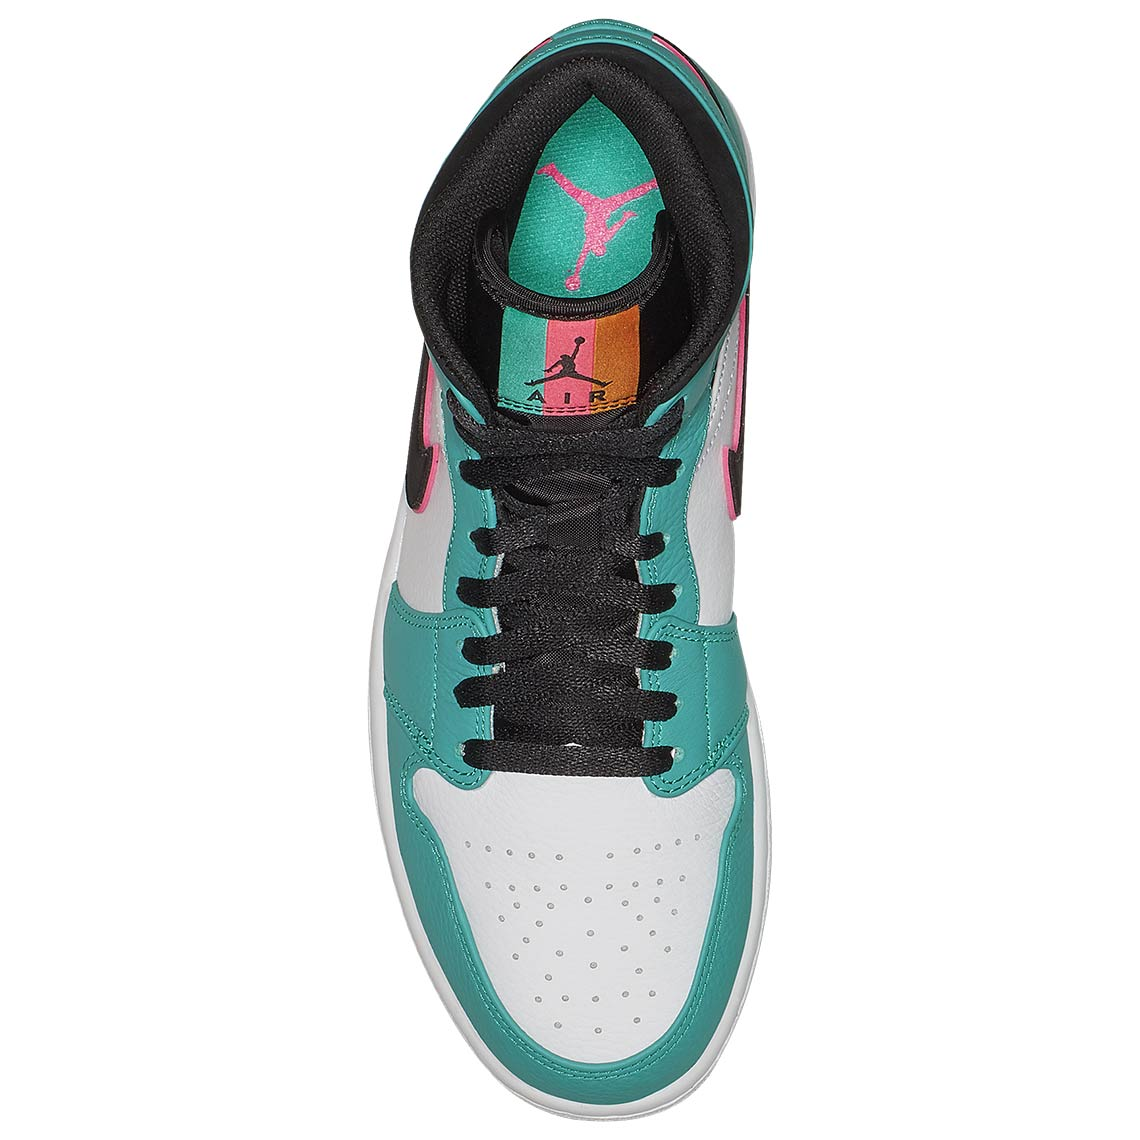 info for 5747c 794e1 Color  Turbo Green Black Hyper Pink Orange Peel Style  852542-306. Where to  Buy. NikeAvailable  Foot LockerAvailable  EastbayAvailable  ChampsAvailable